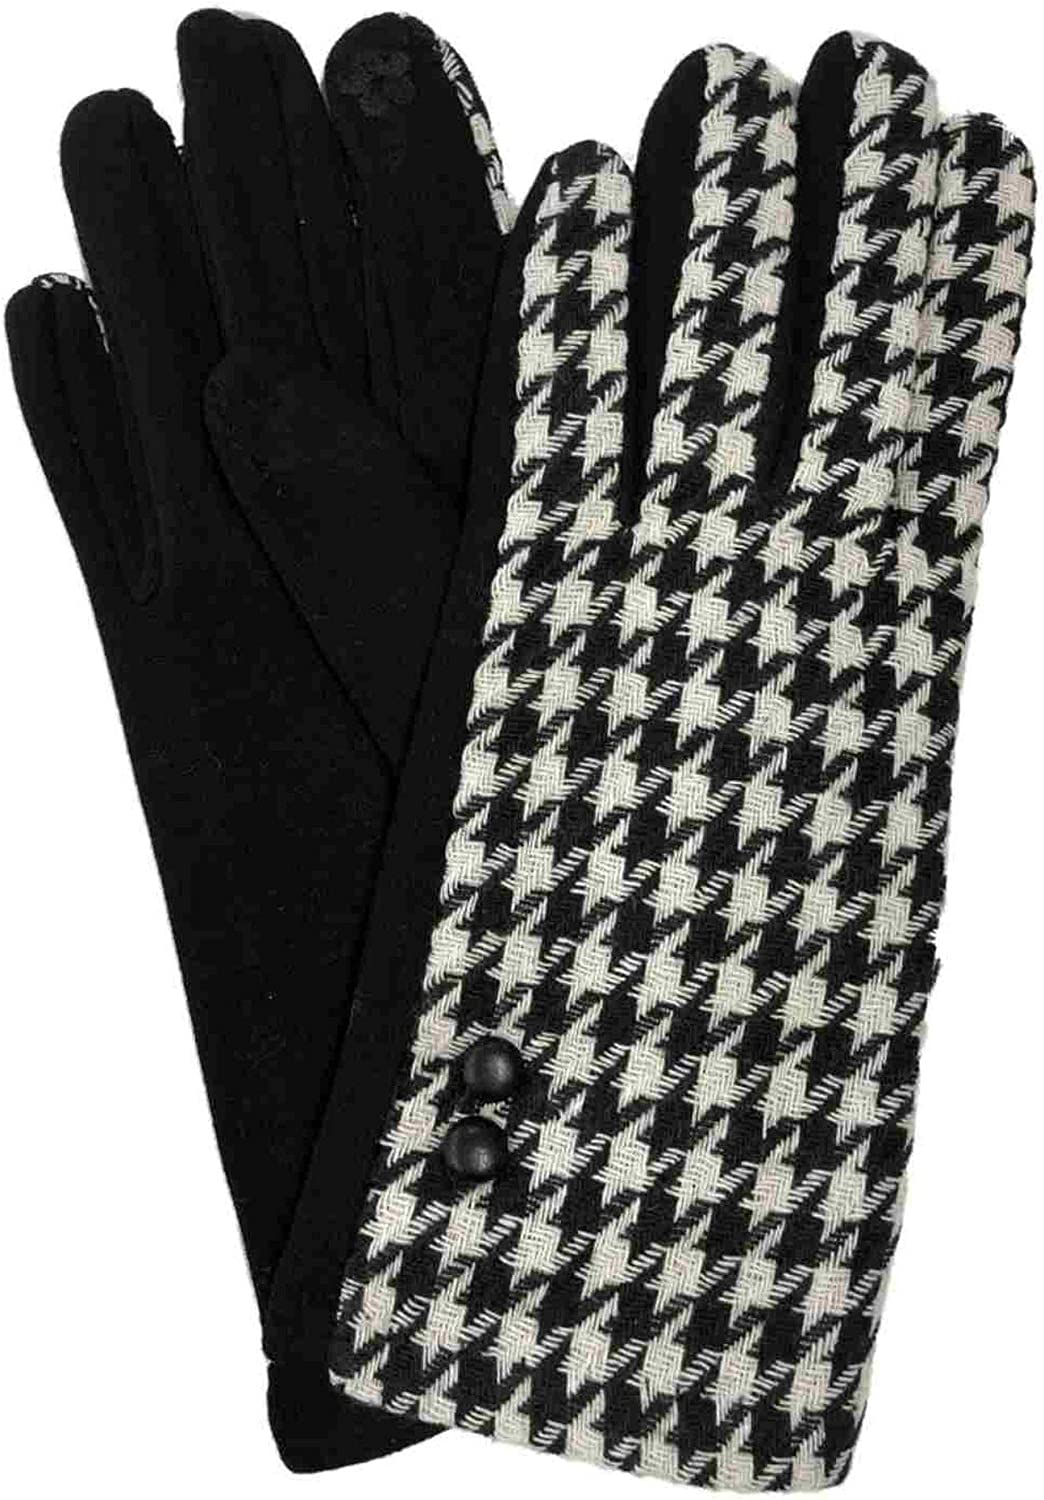 Womens Black & White Houndstooth Stretch Fit Texting & Tech Touchscreen Gloves